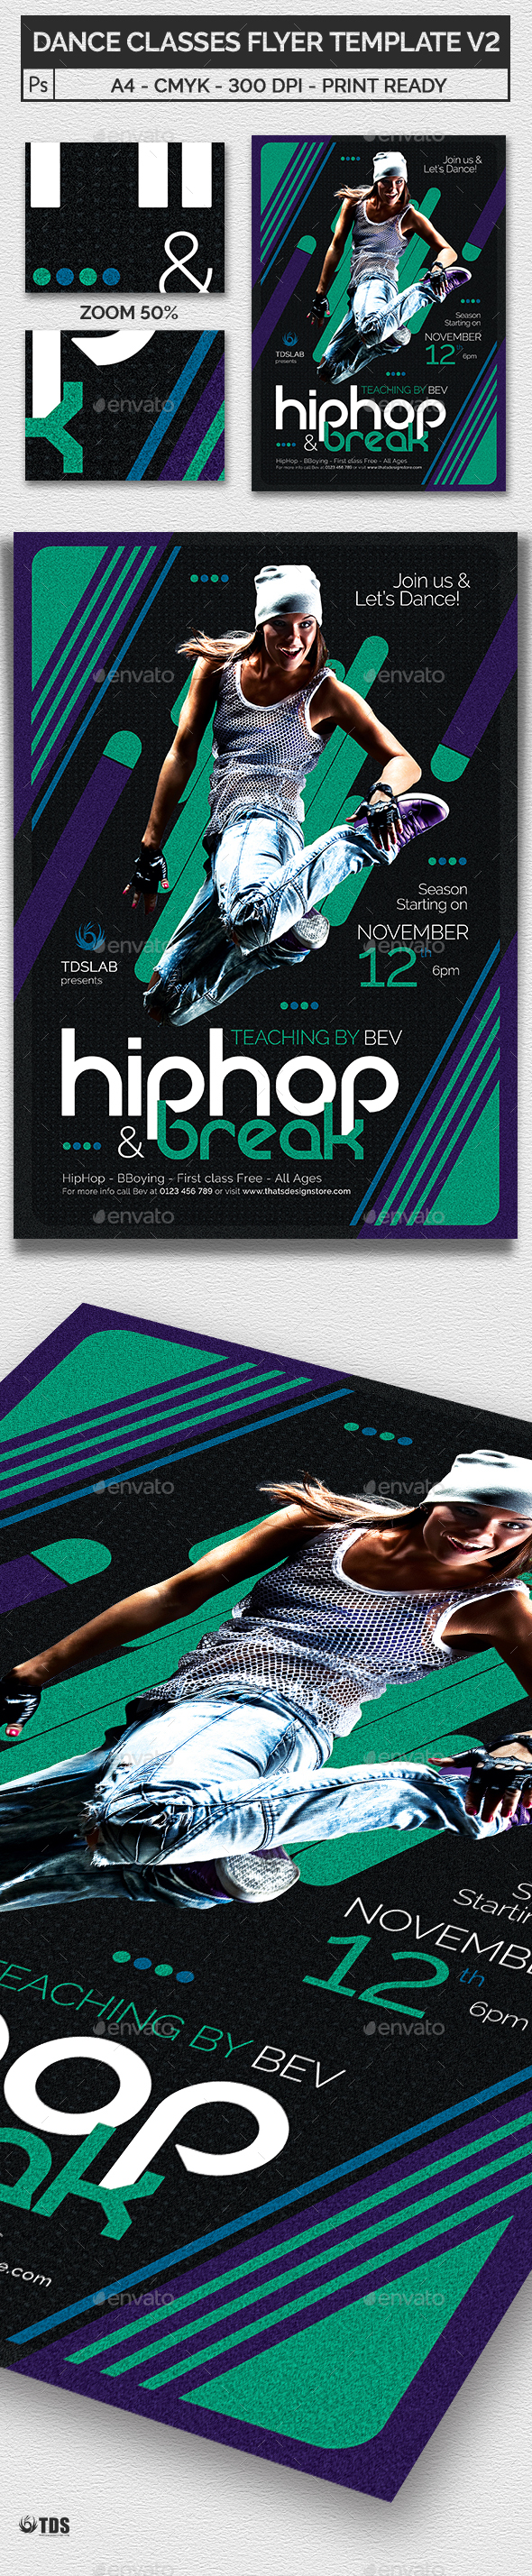 Dance Classes Flyer Template V2 - Sports Events